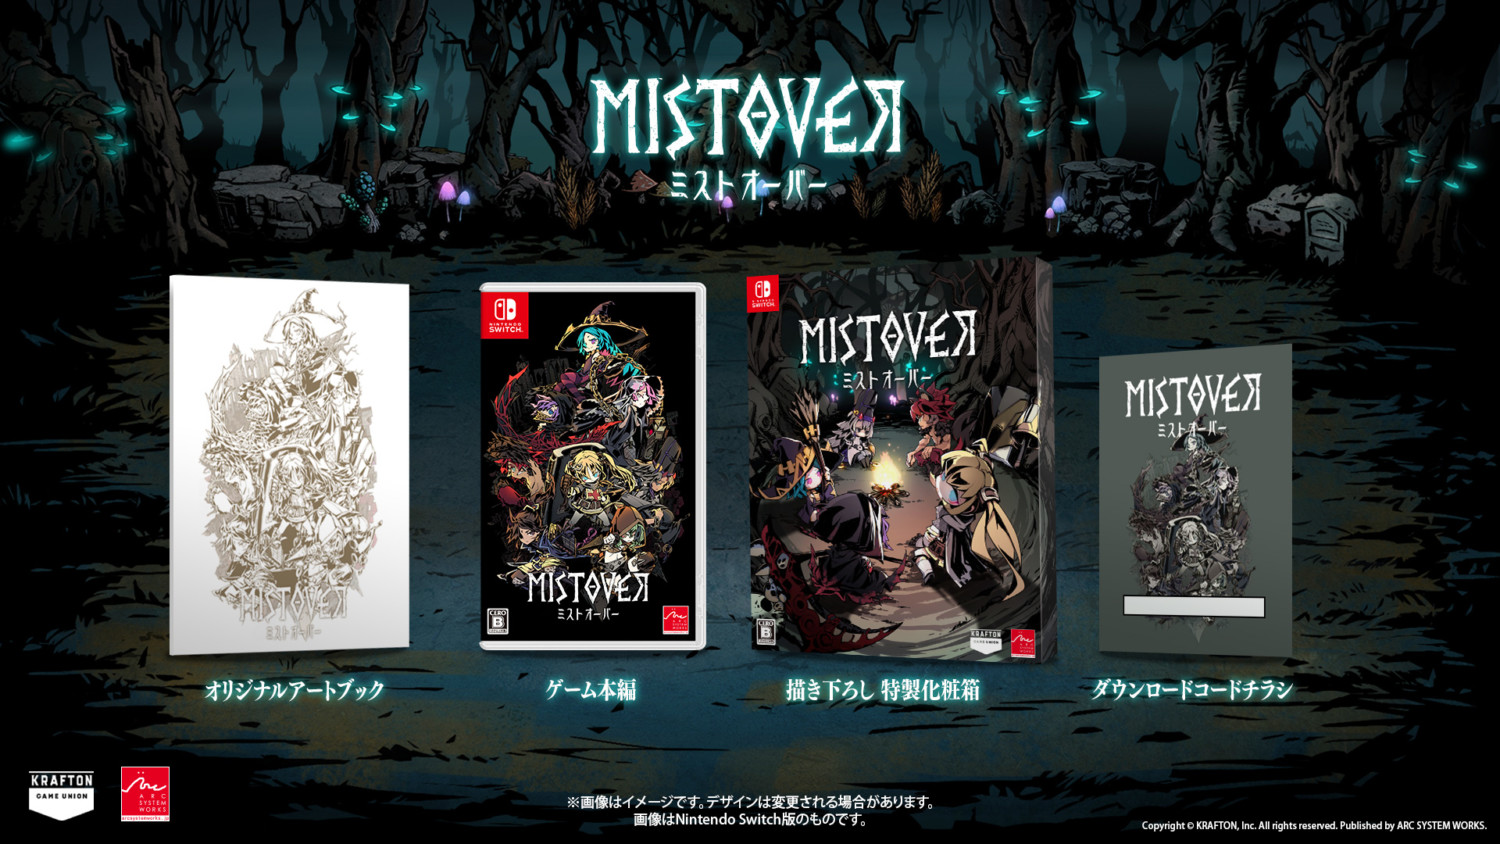 Mistover, Multi-language, PS4, PlayStation 4, Nintendo Switch, Switch, Japan, Arc System Works, Pre-order, ミストオーバー